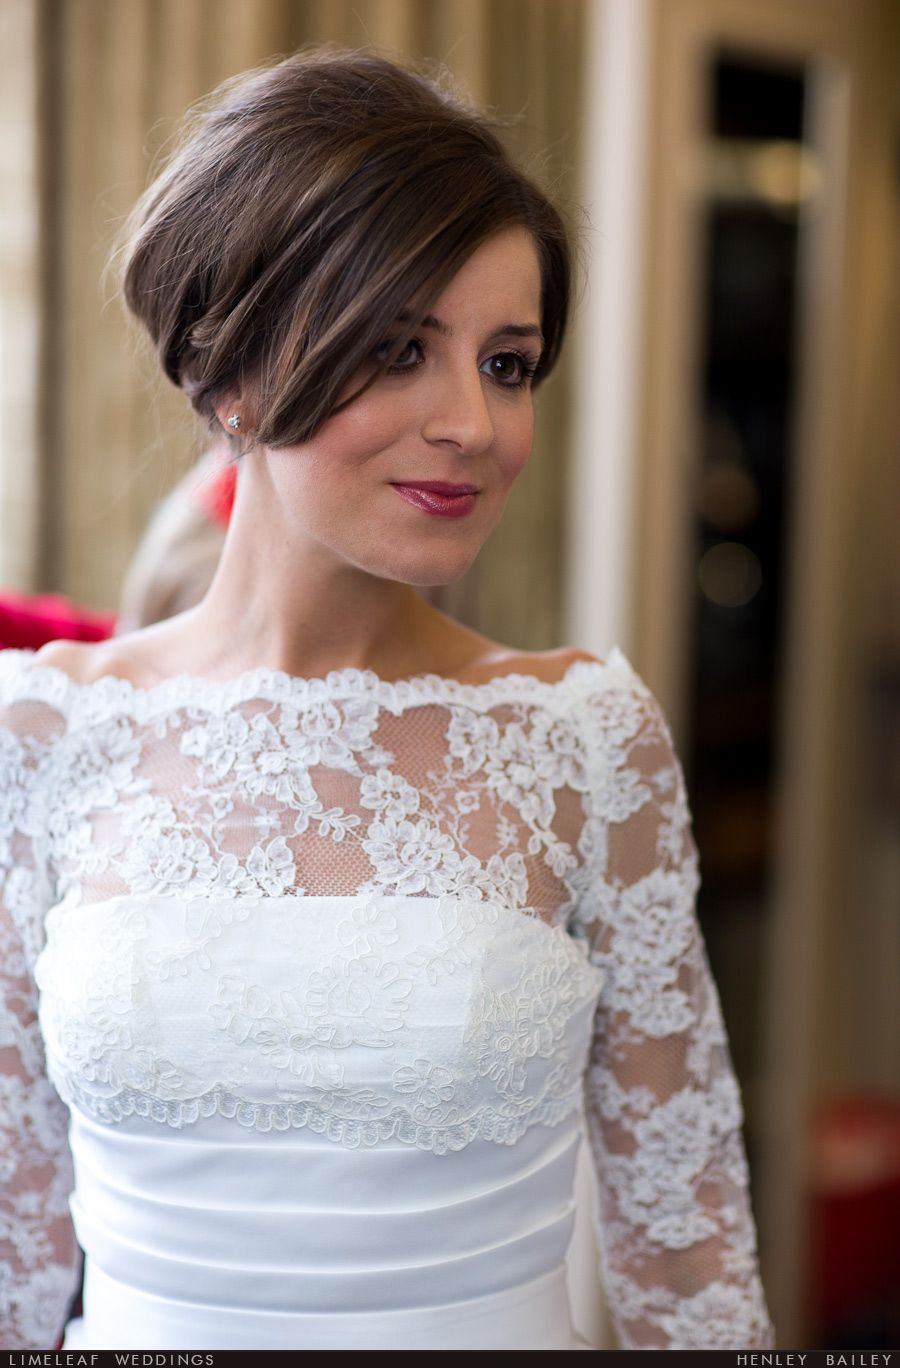 Bride with hair up and white lace shrug over her satin wedding dress ...